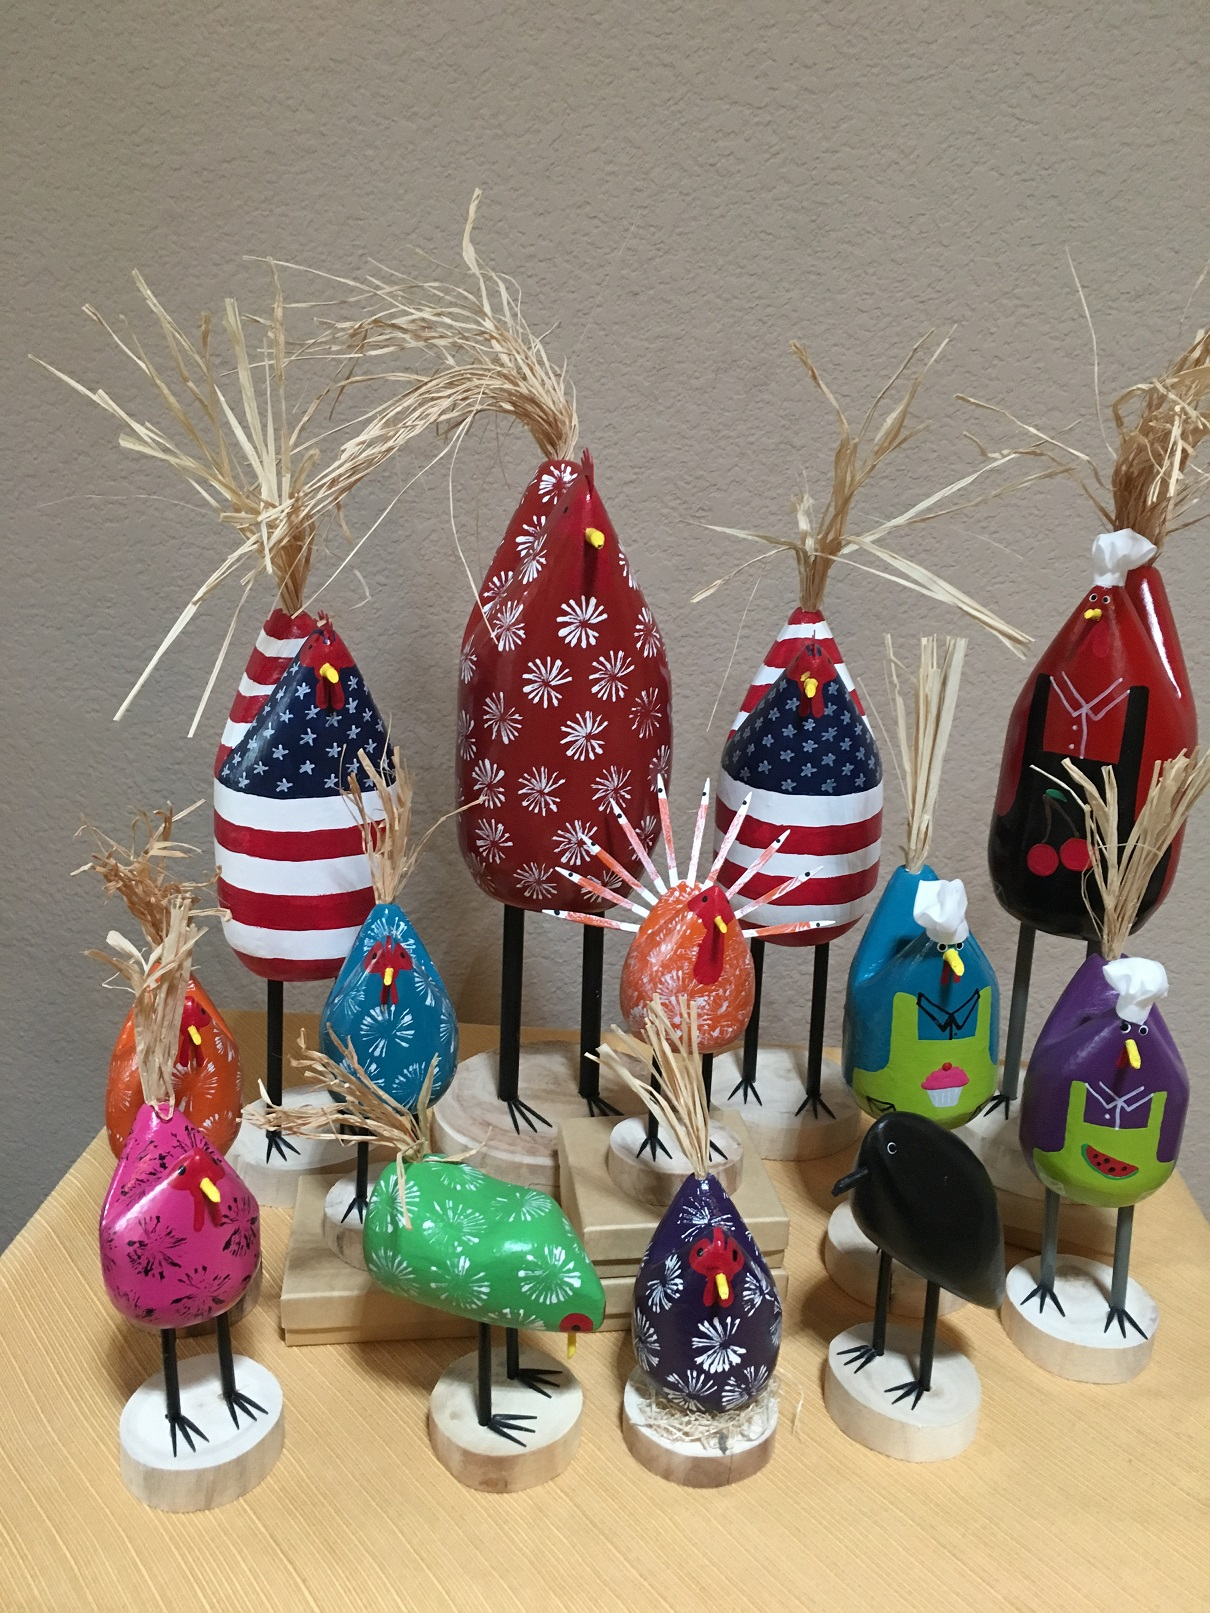 Browse More Native American Art and Craft